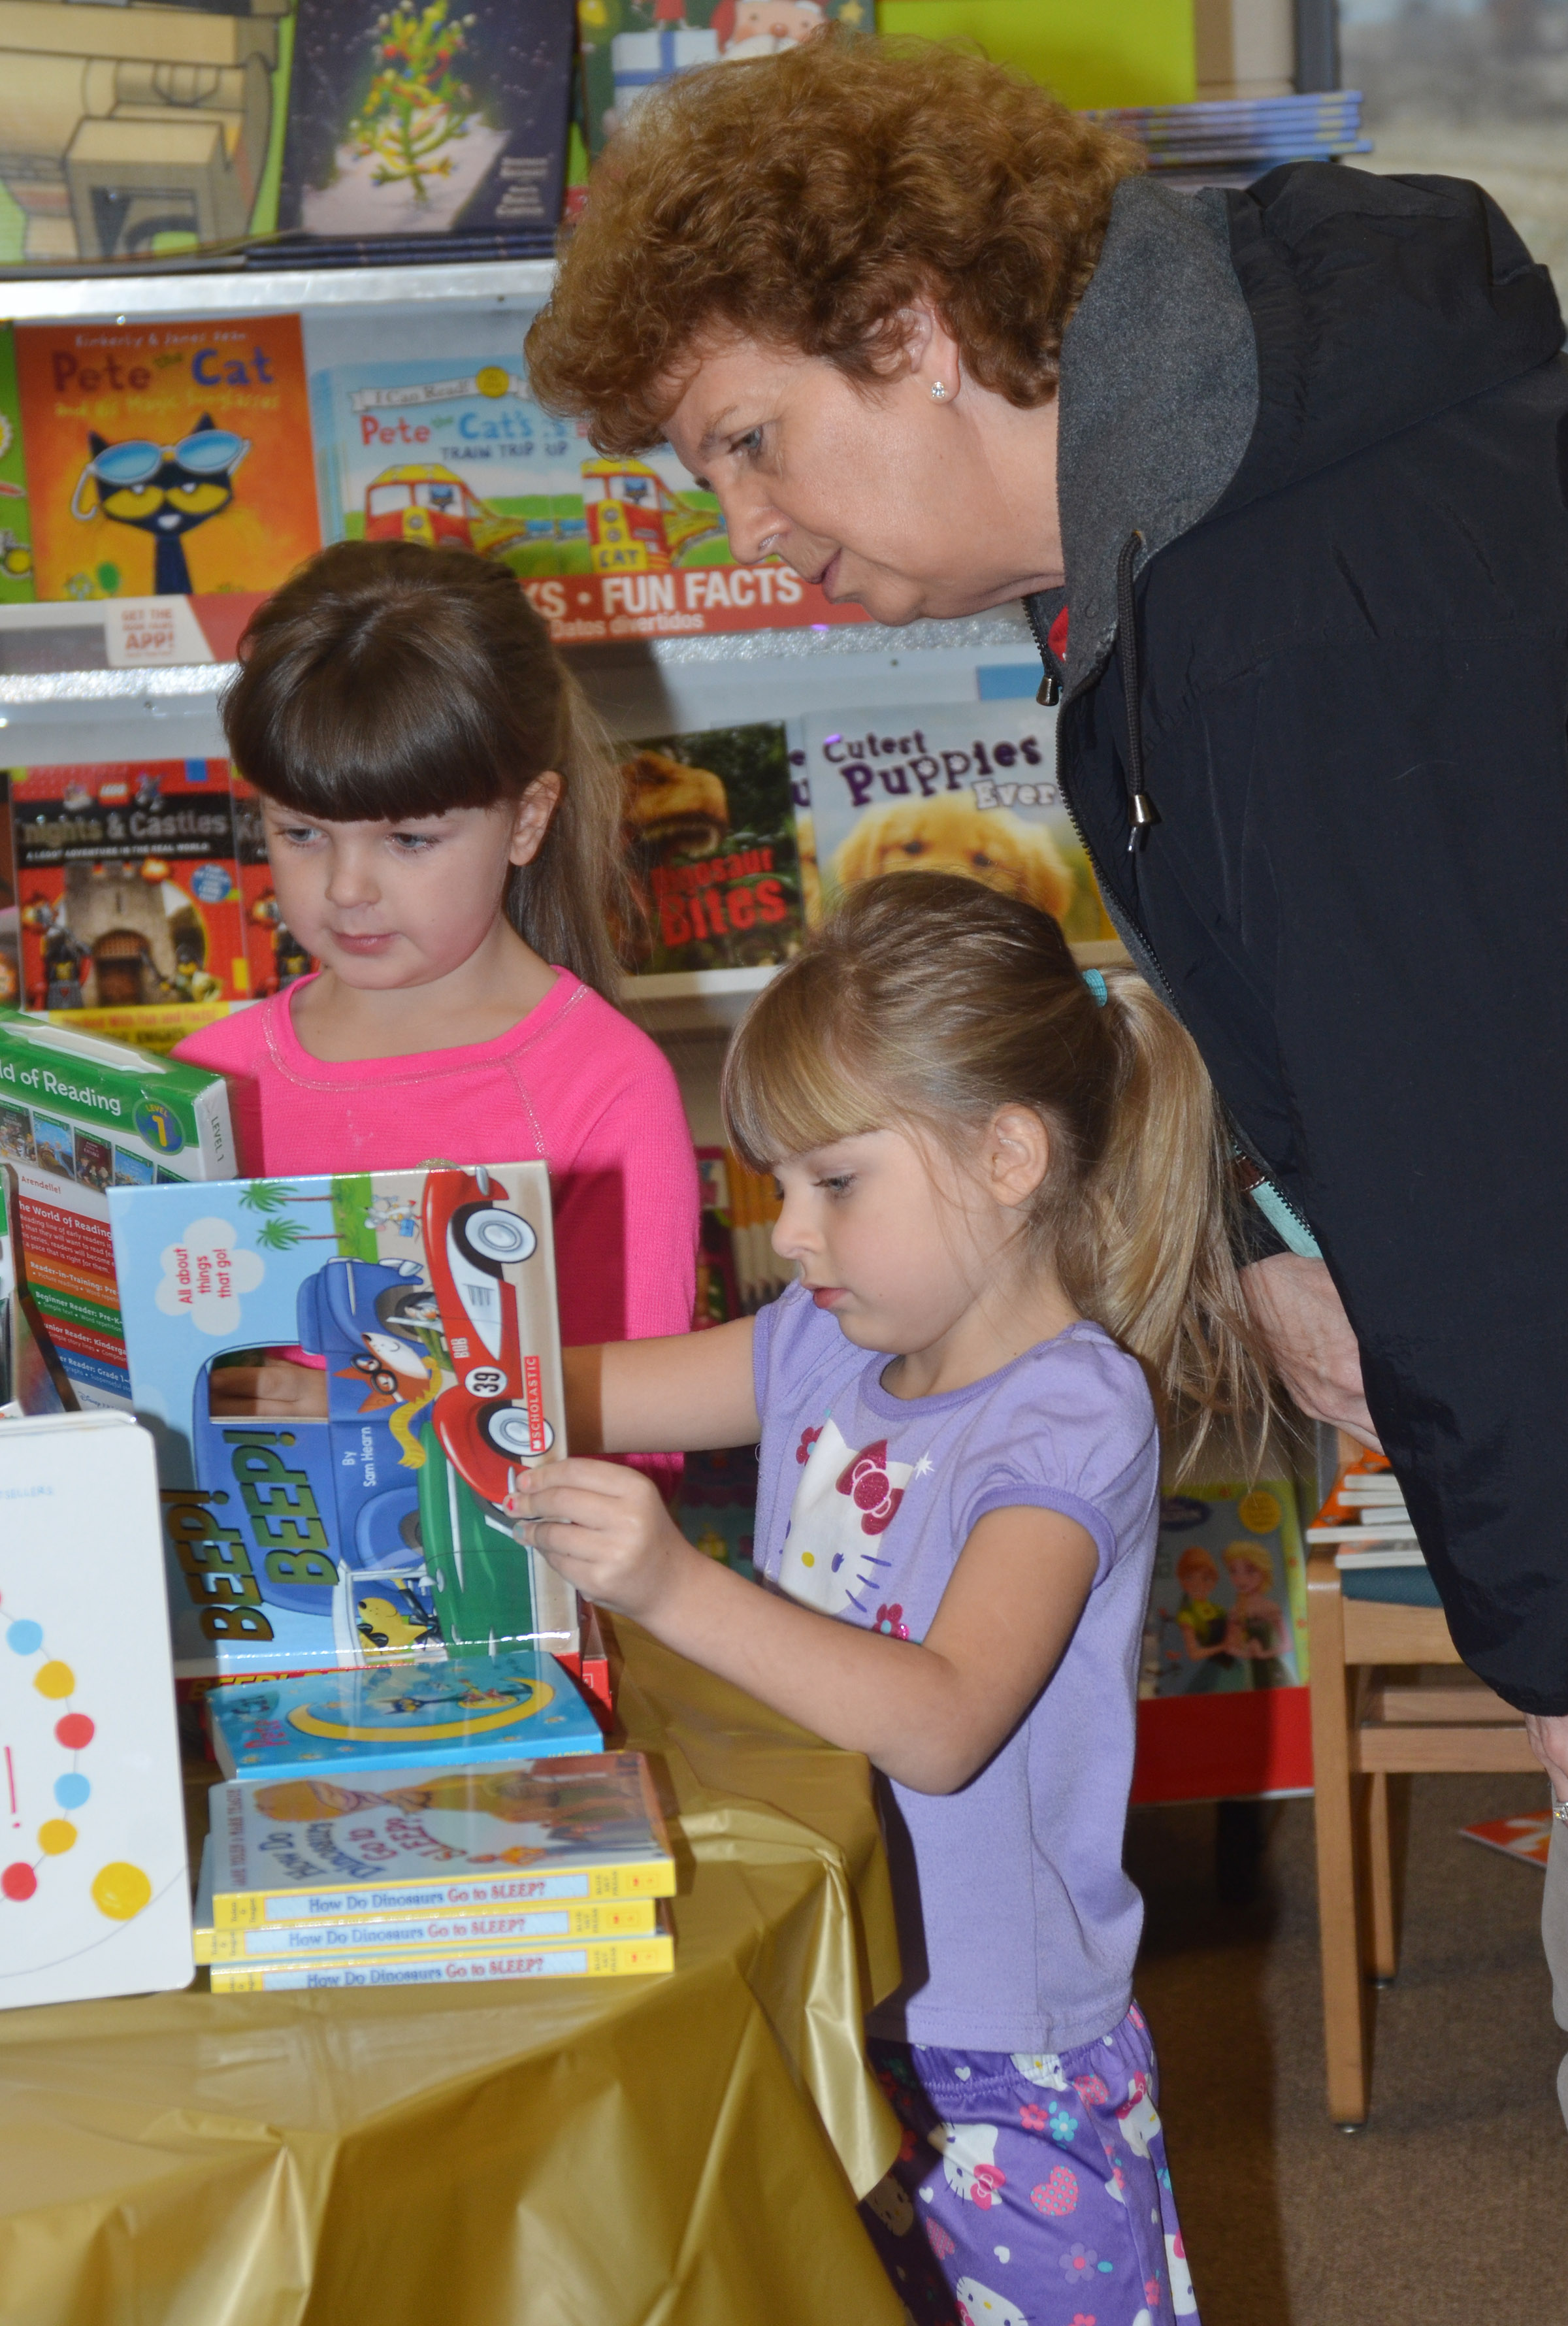 CES second-grader Kaleigh Wilhoite, at left, and her sister, kindergartener Madison Wilhoite, look at books with their grandmother, Trena Burchett.